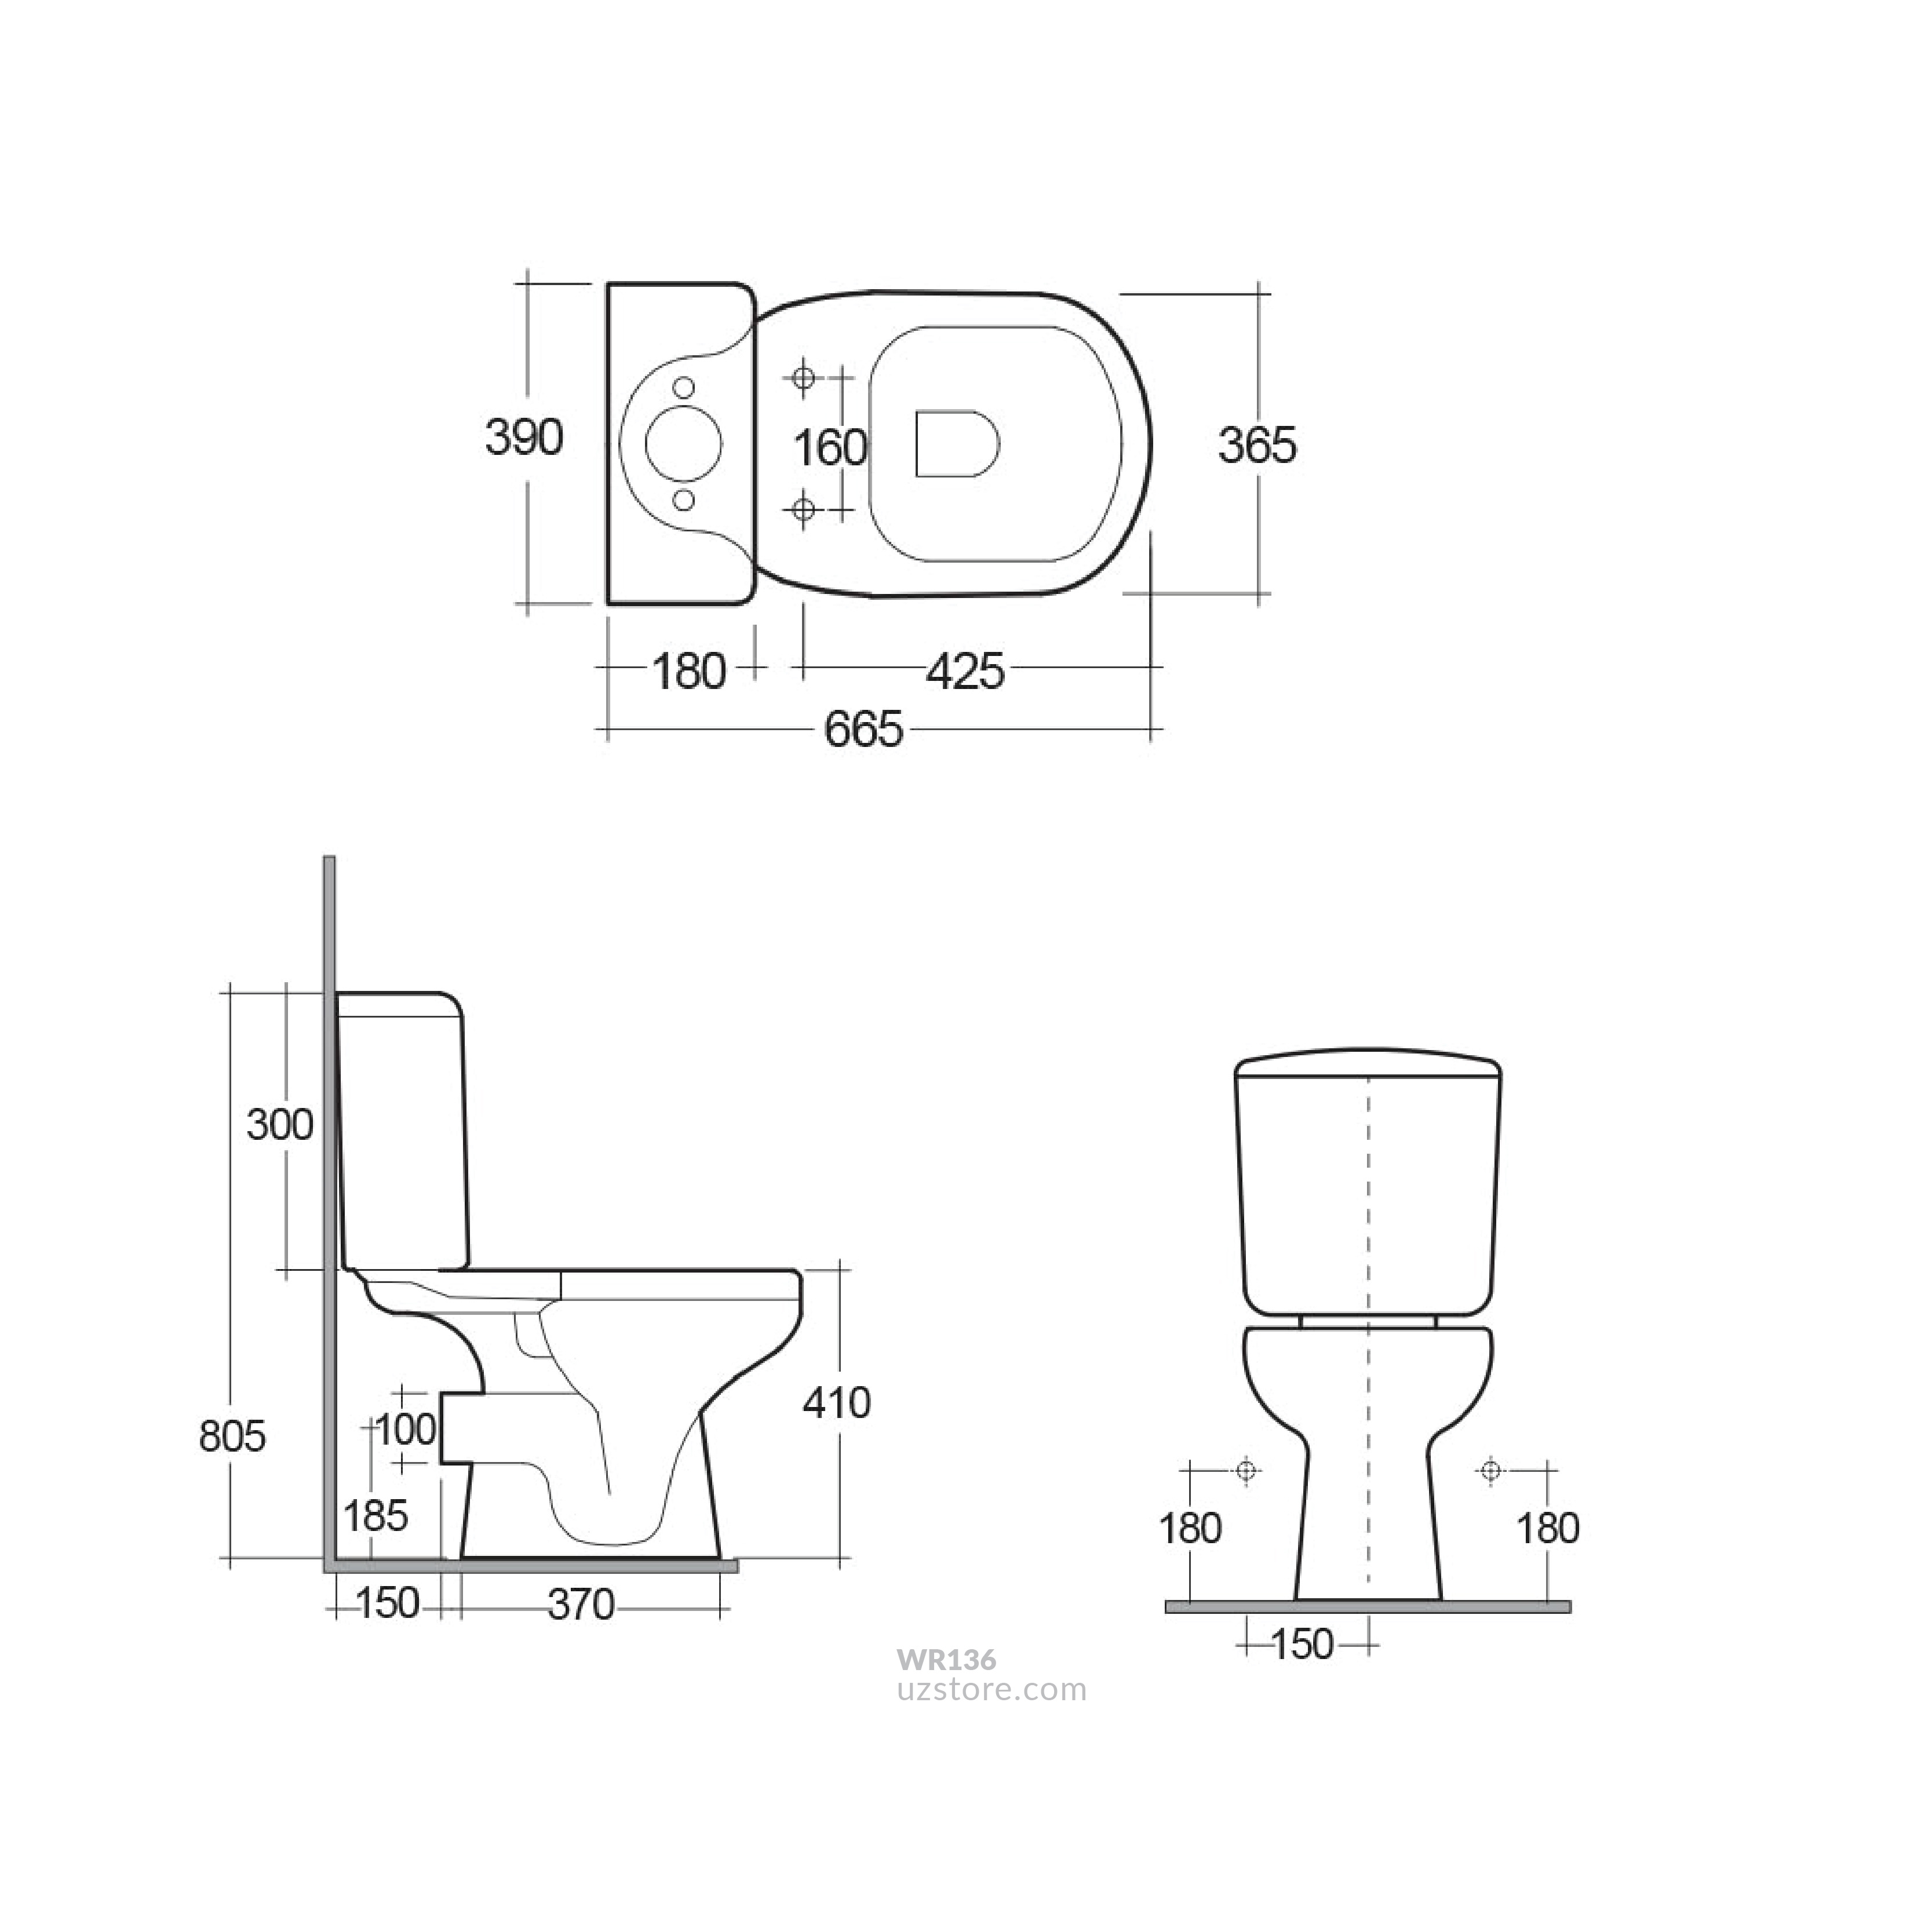 RAK - LIWA Water Closet Strap + Flush Tank & Seat Cover